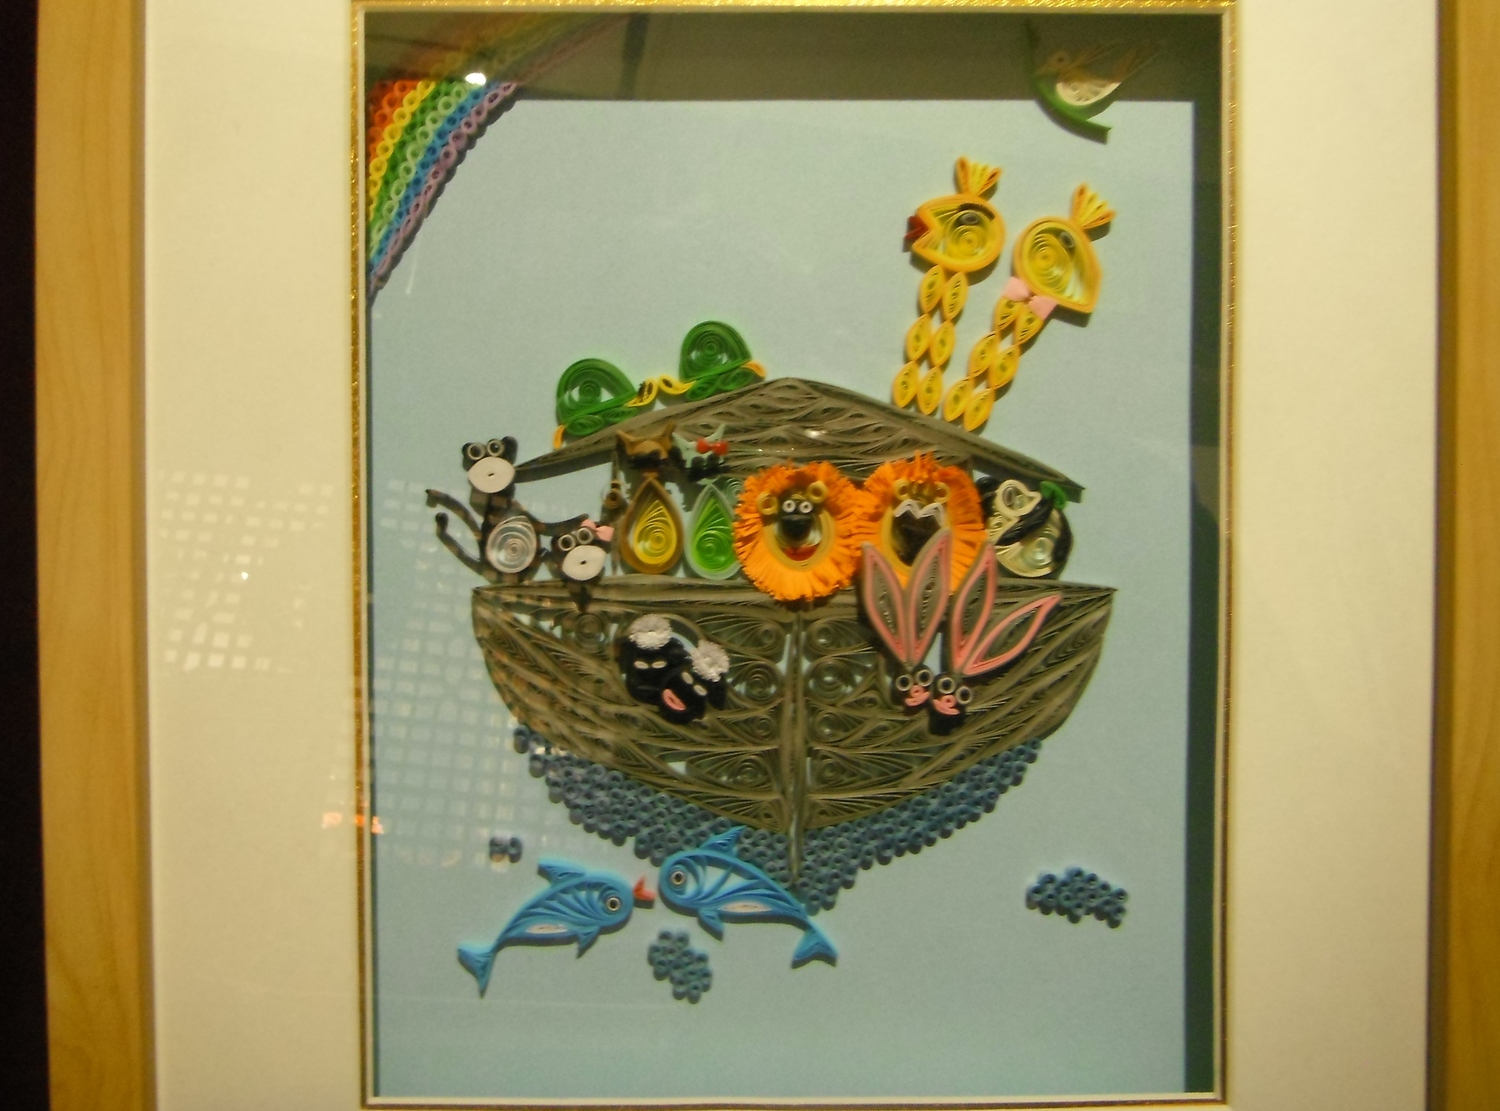 <p>Framed Quilling Noah's Ark Pictures&nbsp;</p>